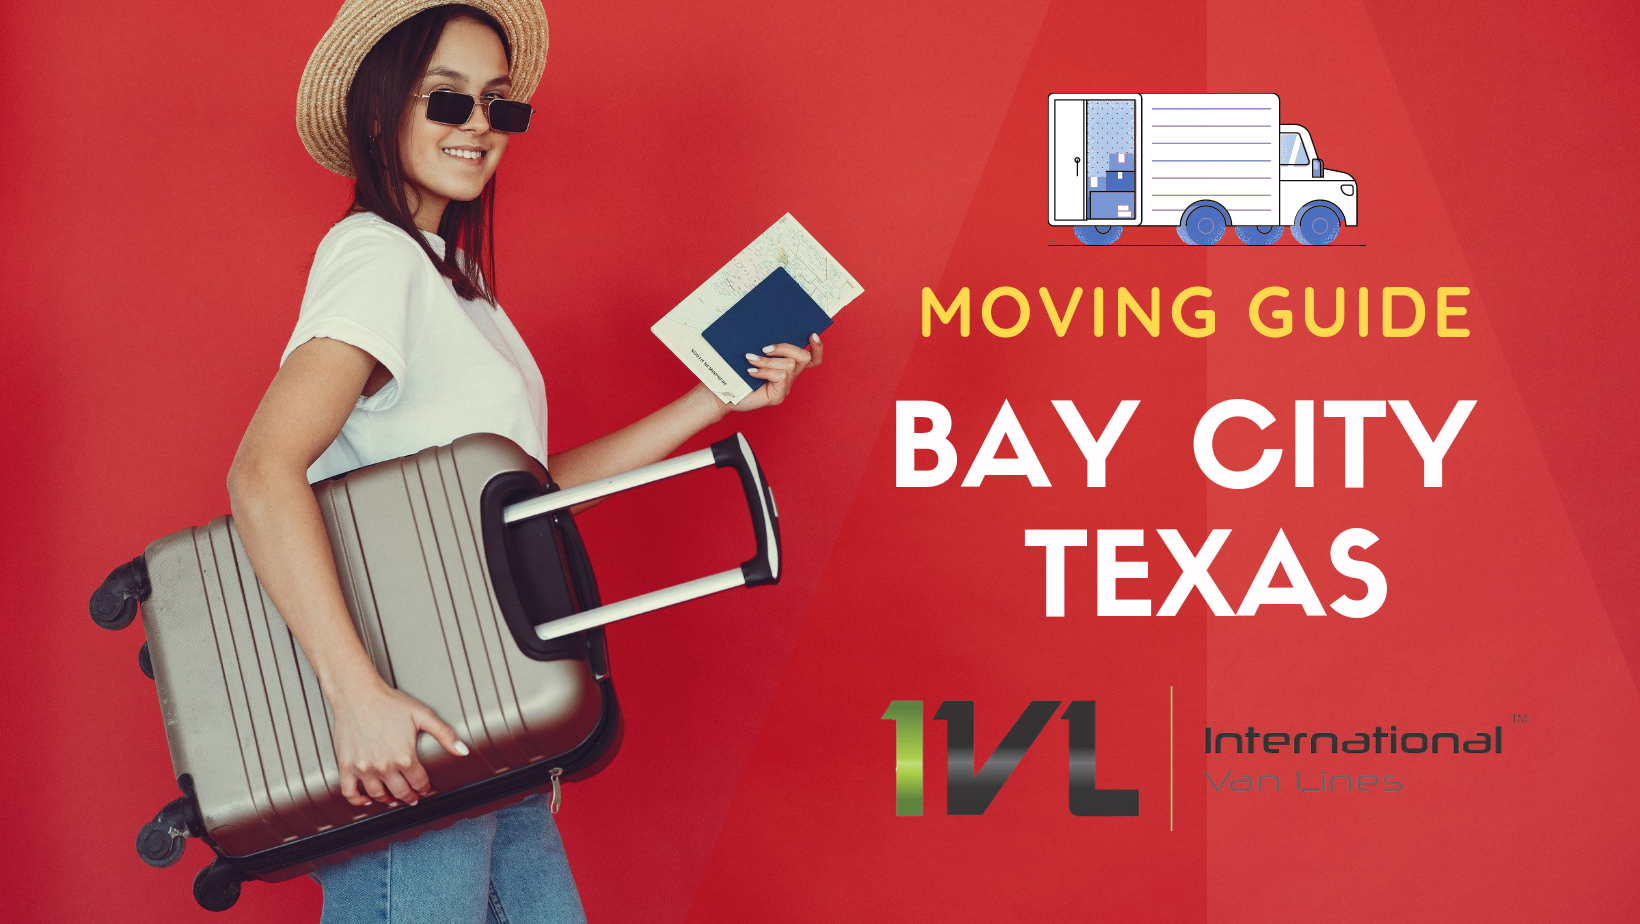 Best Places in Bay City Texas, Moving Guide